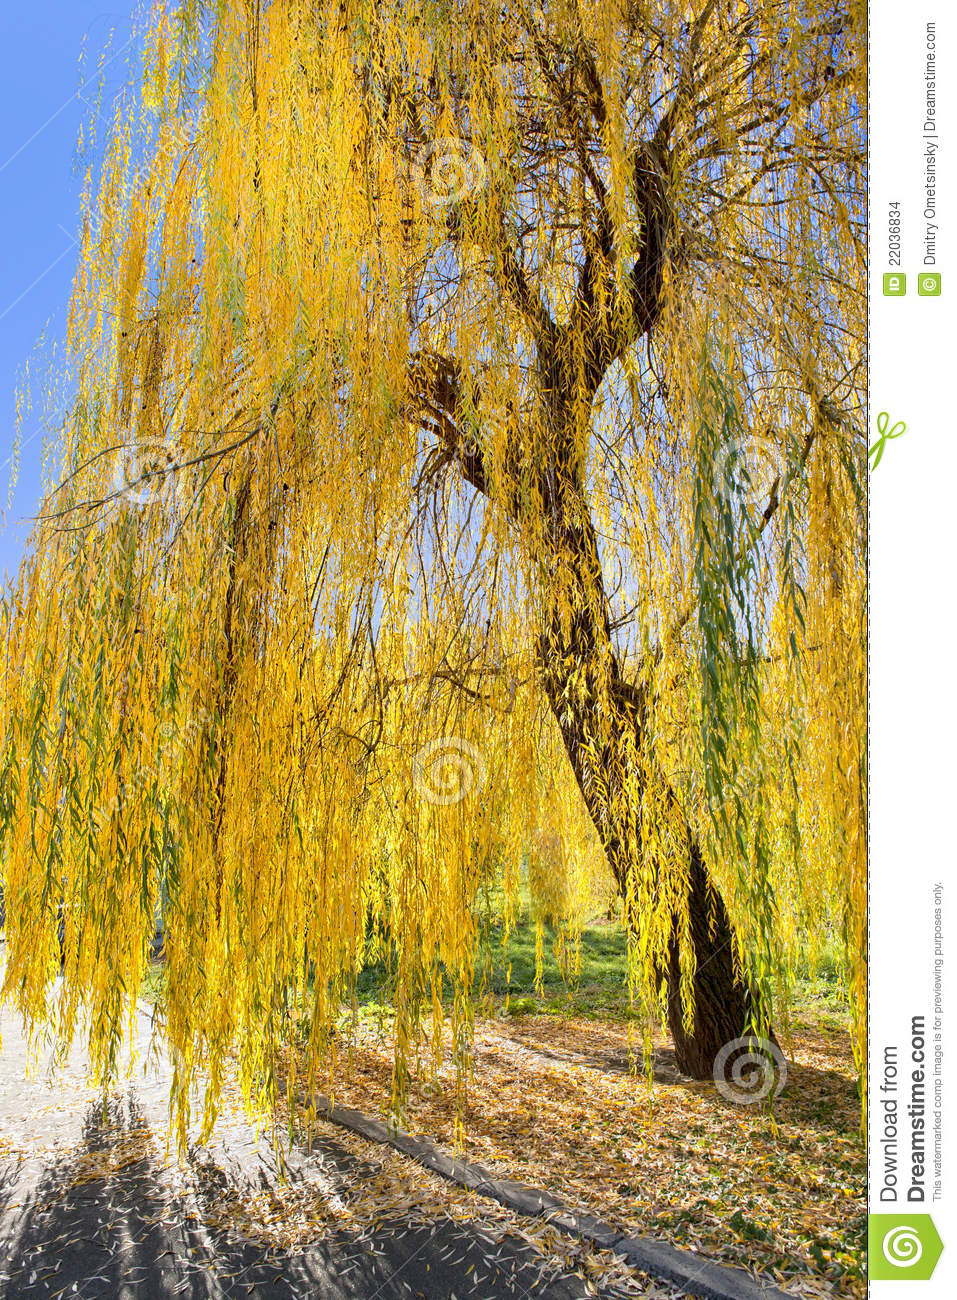 Beautiful Leaf Hd Wallpaper Yellow Willow Tree In Sun Rays In Fall In The Park Stock